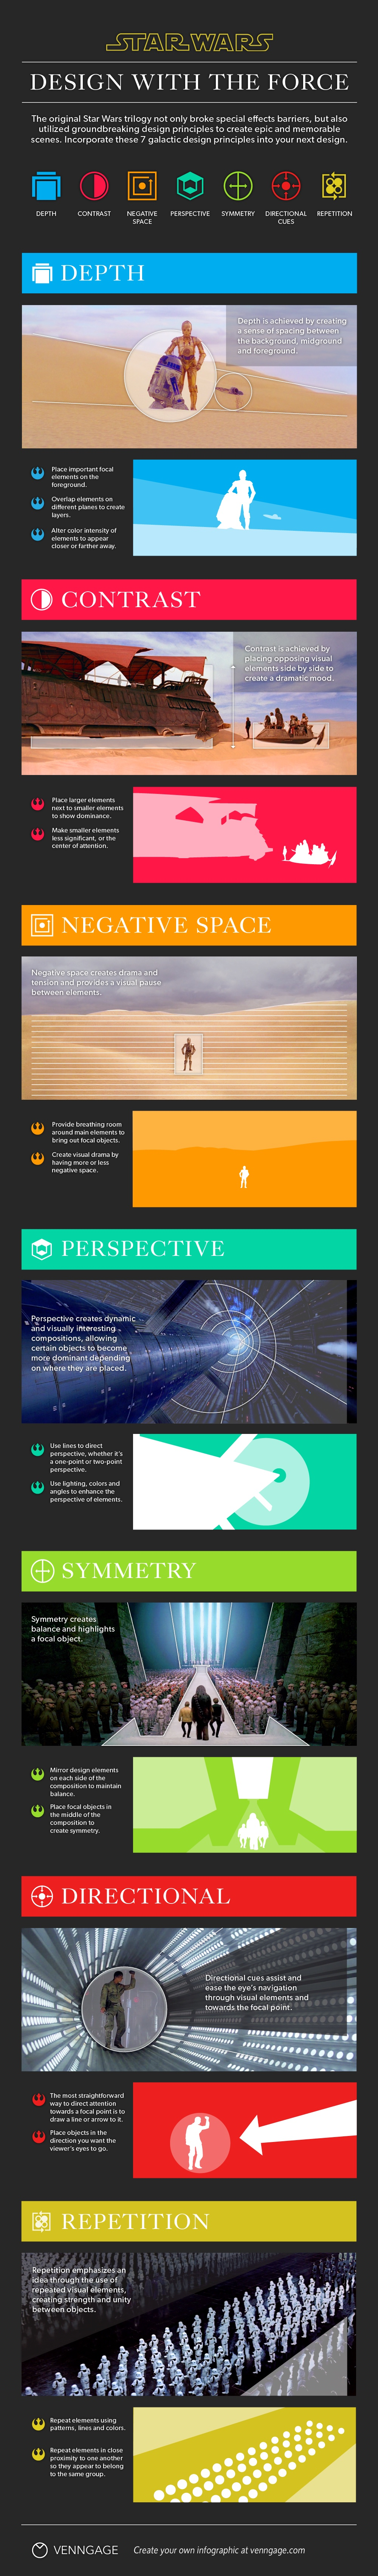 [Infographic] Design with the Force - 7 Star Wars Design Principles